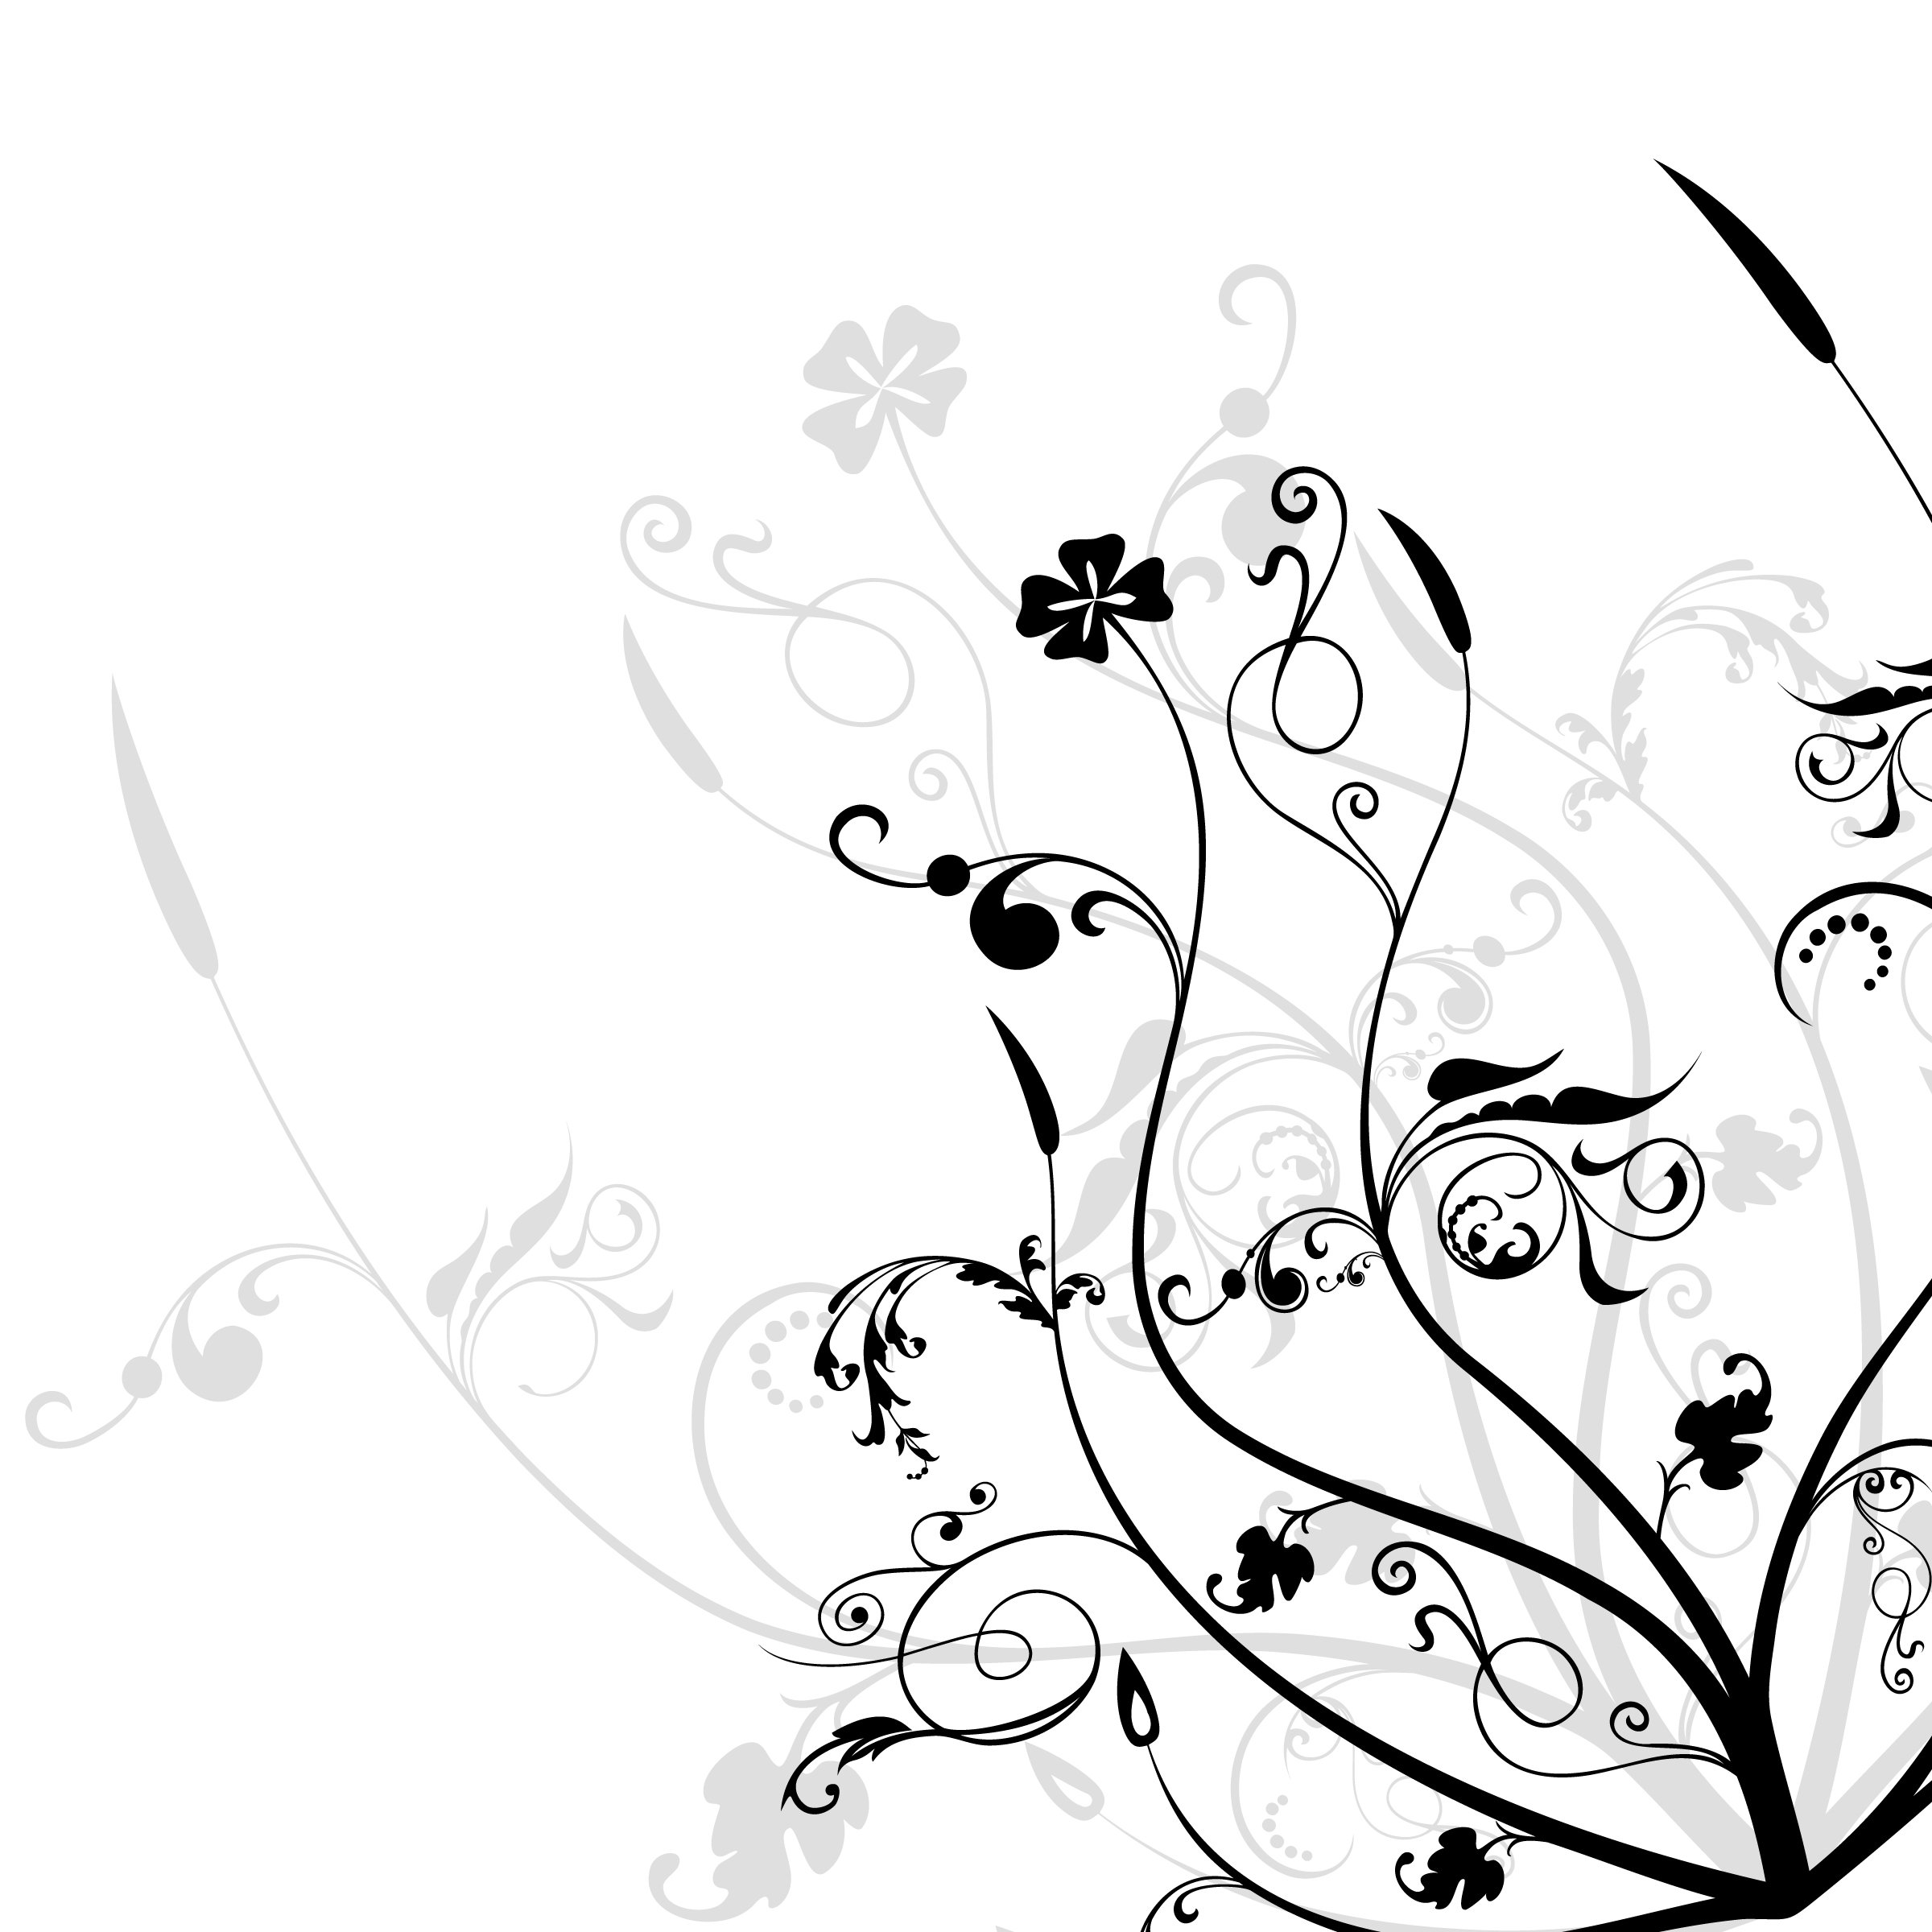 Free Black And White Flower Designs, Download Free Clip Art.